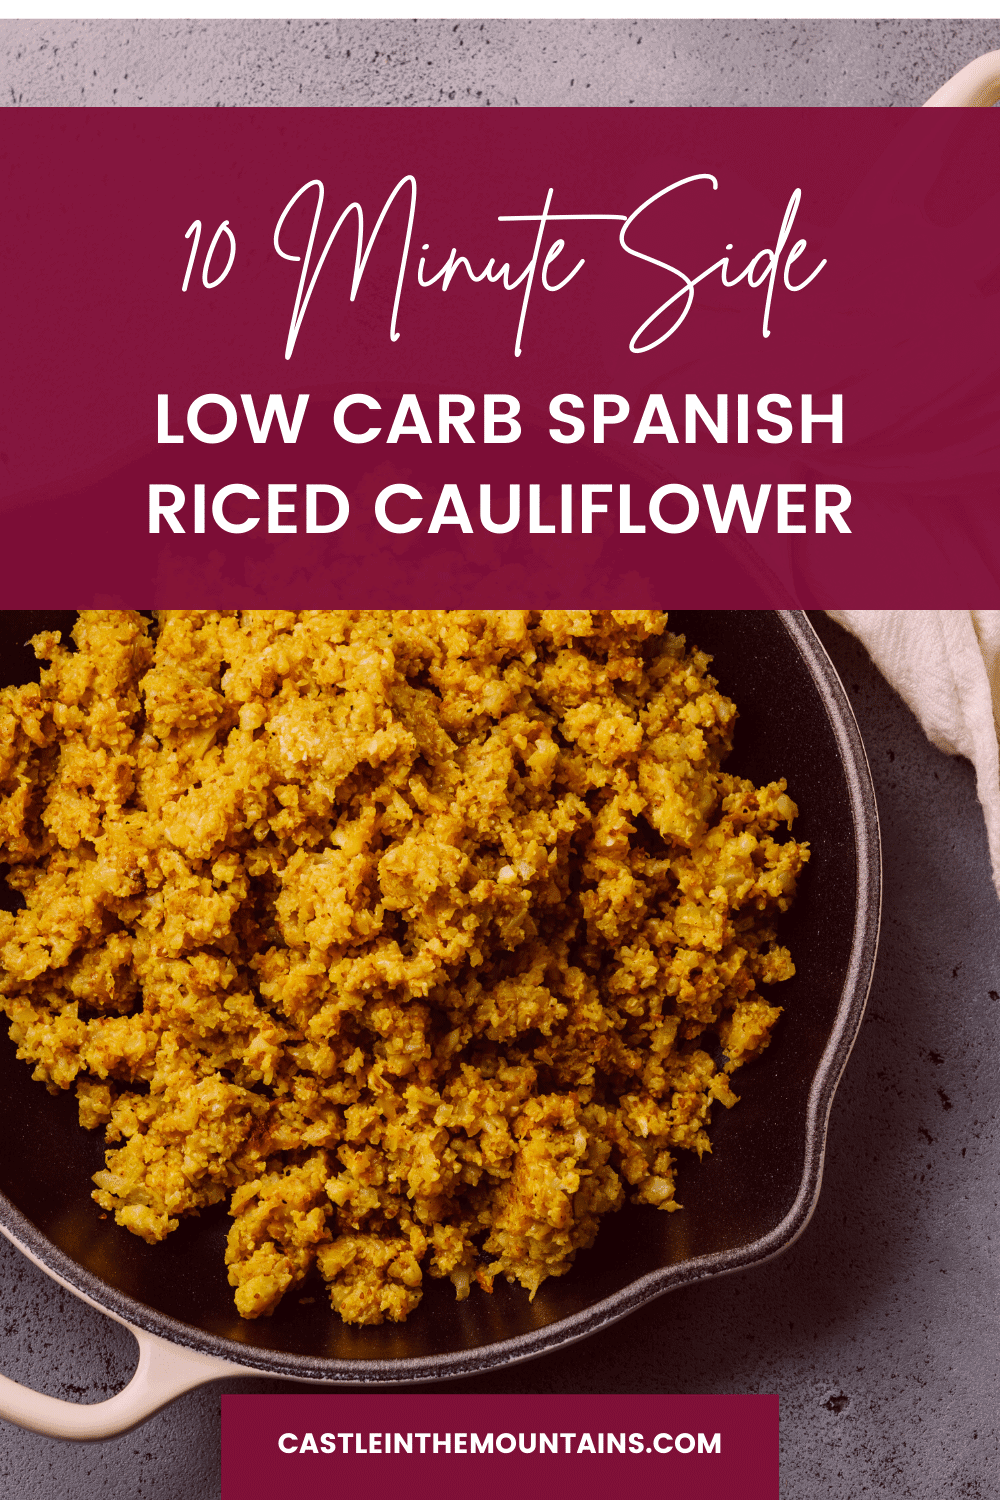 Spanish Riced Cauliflower - Easy 10 Minute Mexican Side Dish